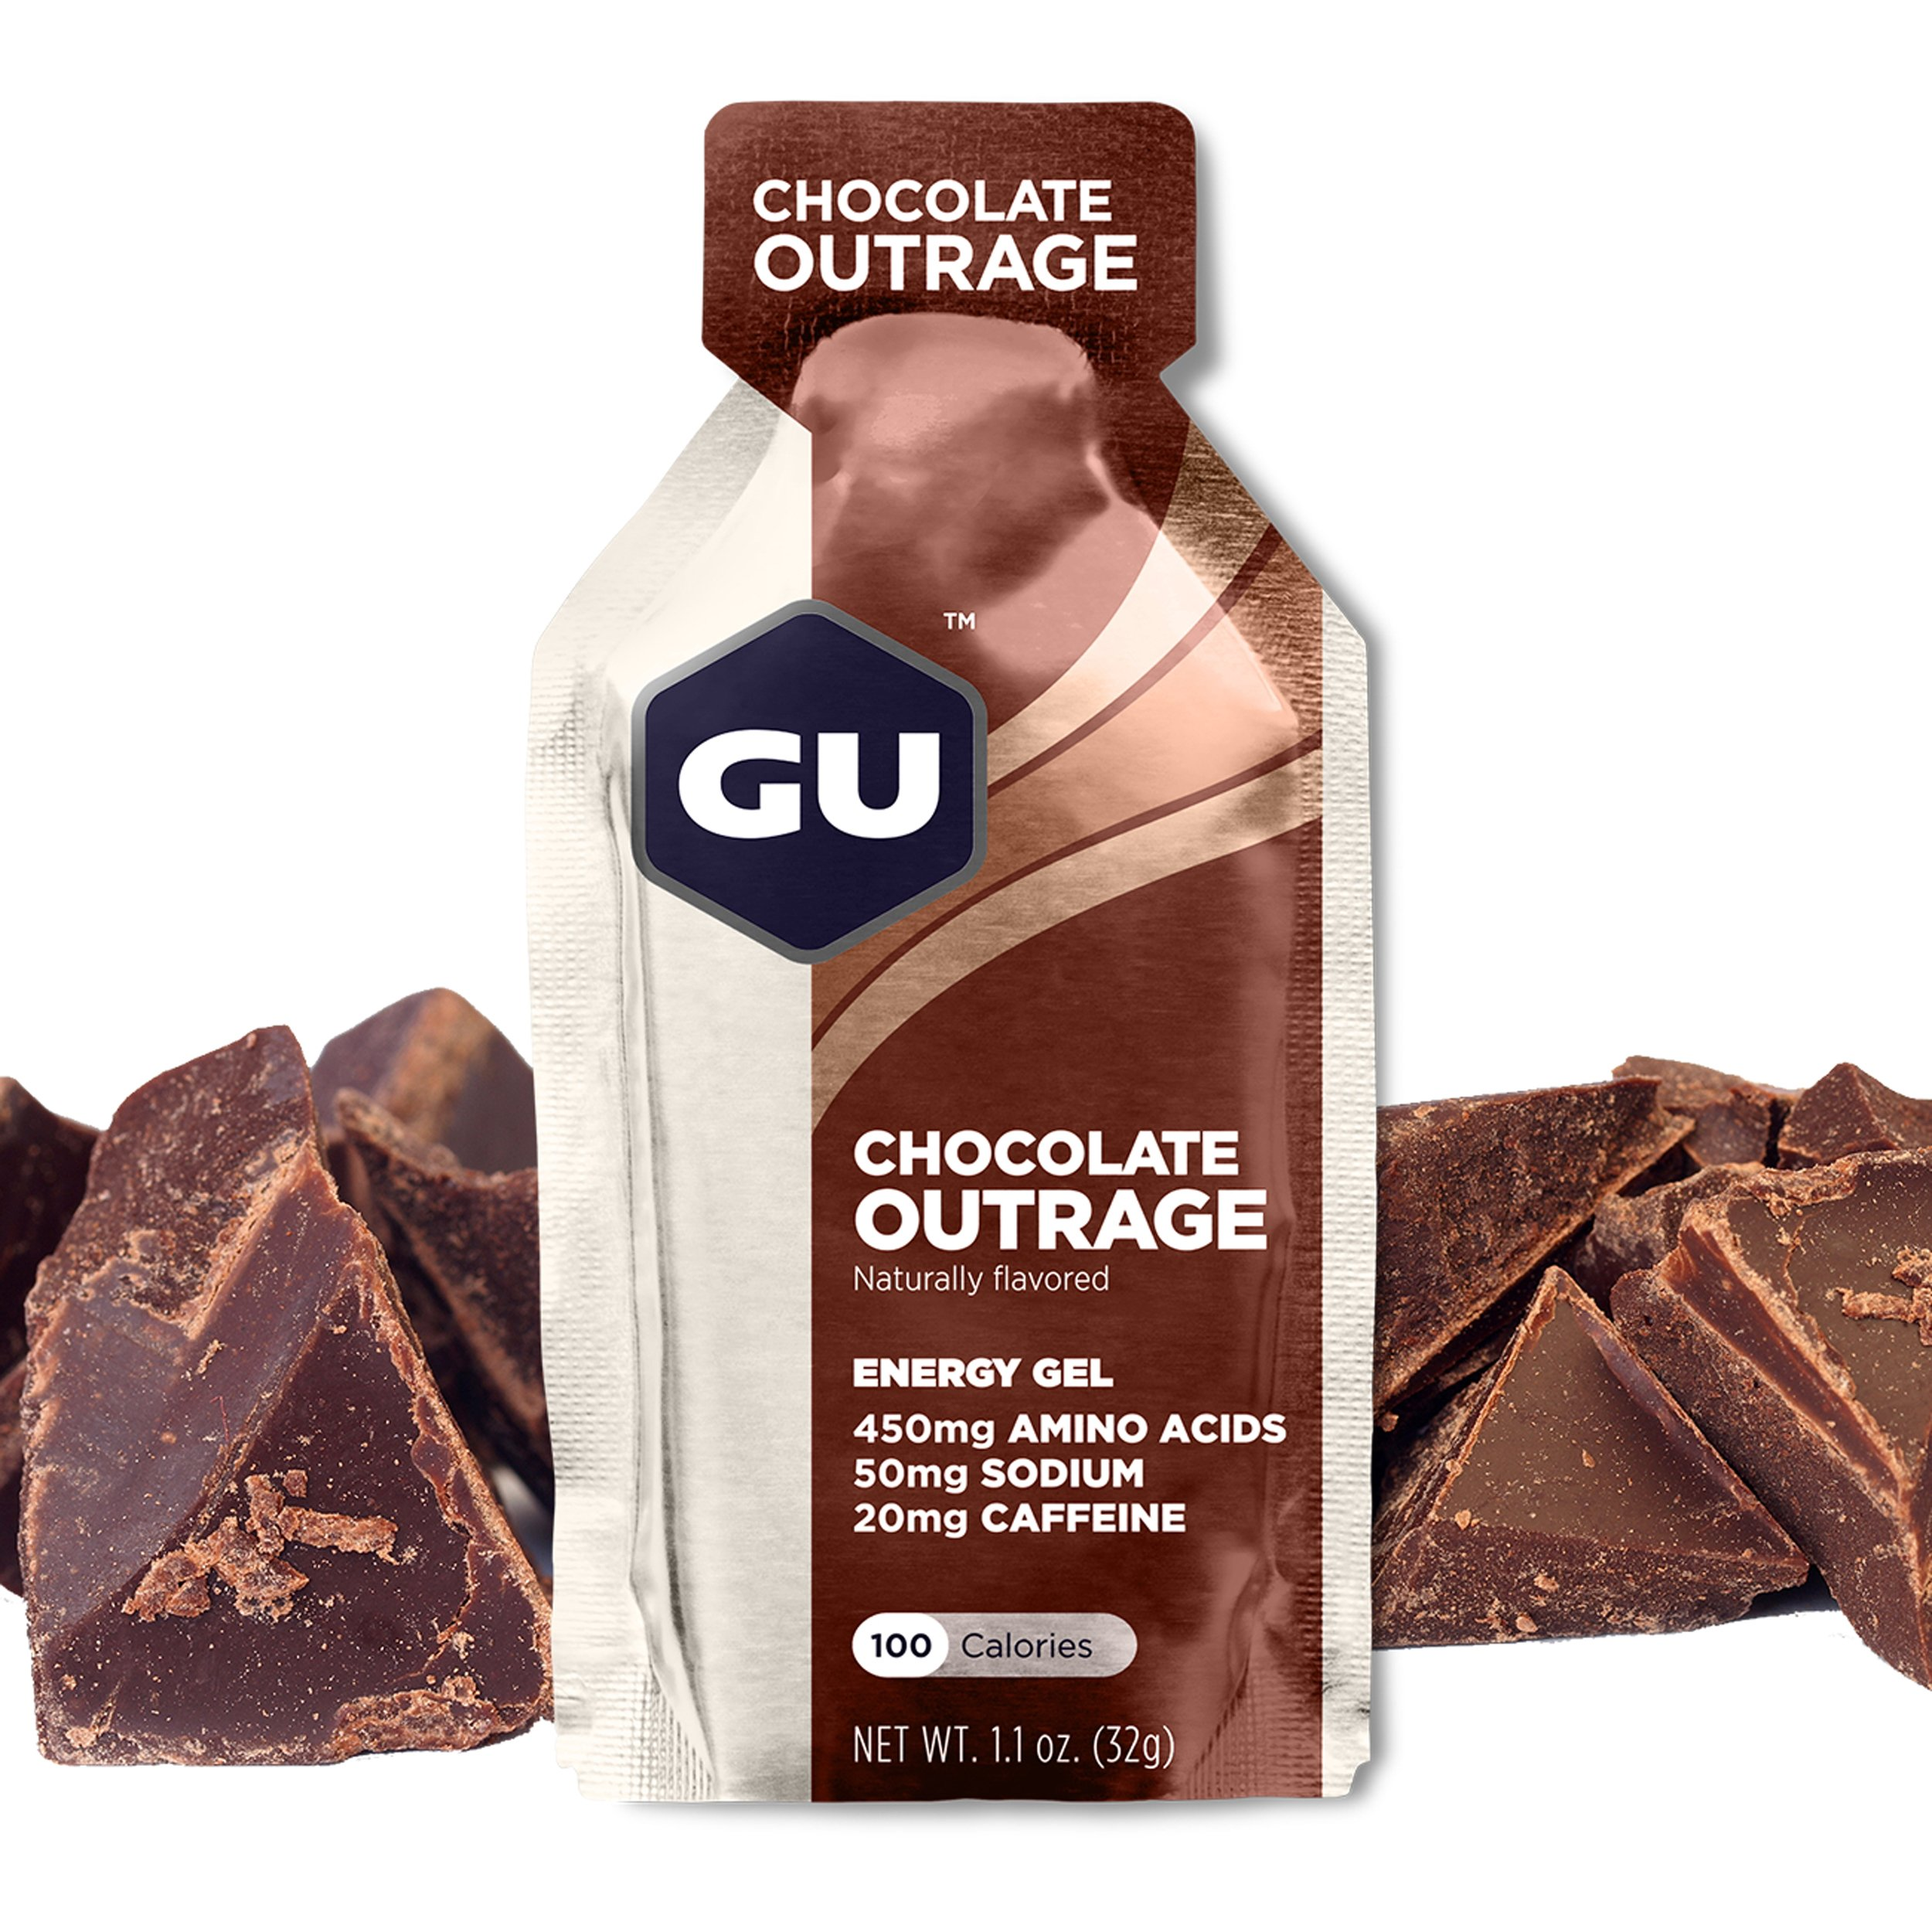 GU Energy Original Sports Nutrition Energy Gel, Chocolate Outrage, 24-Count